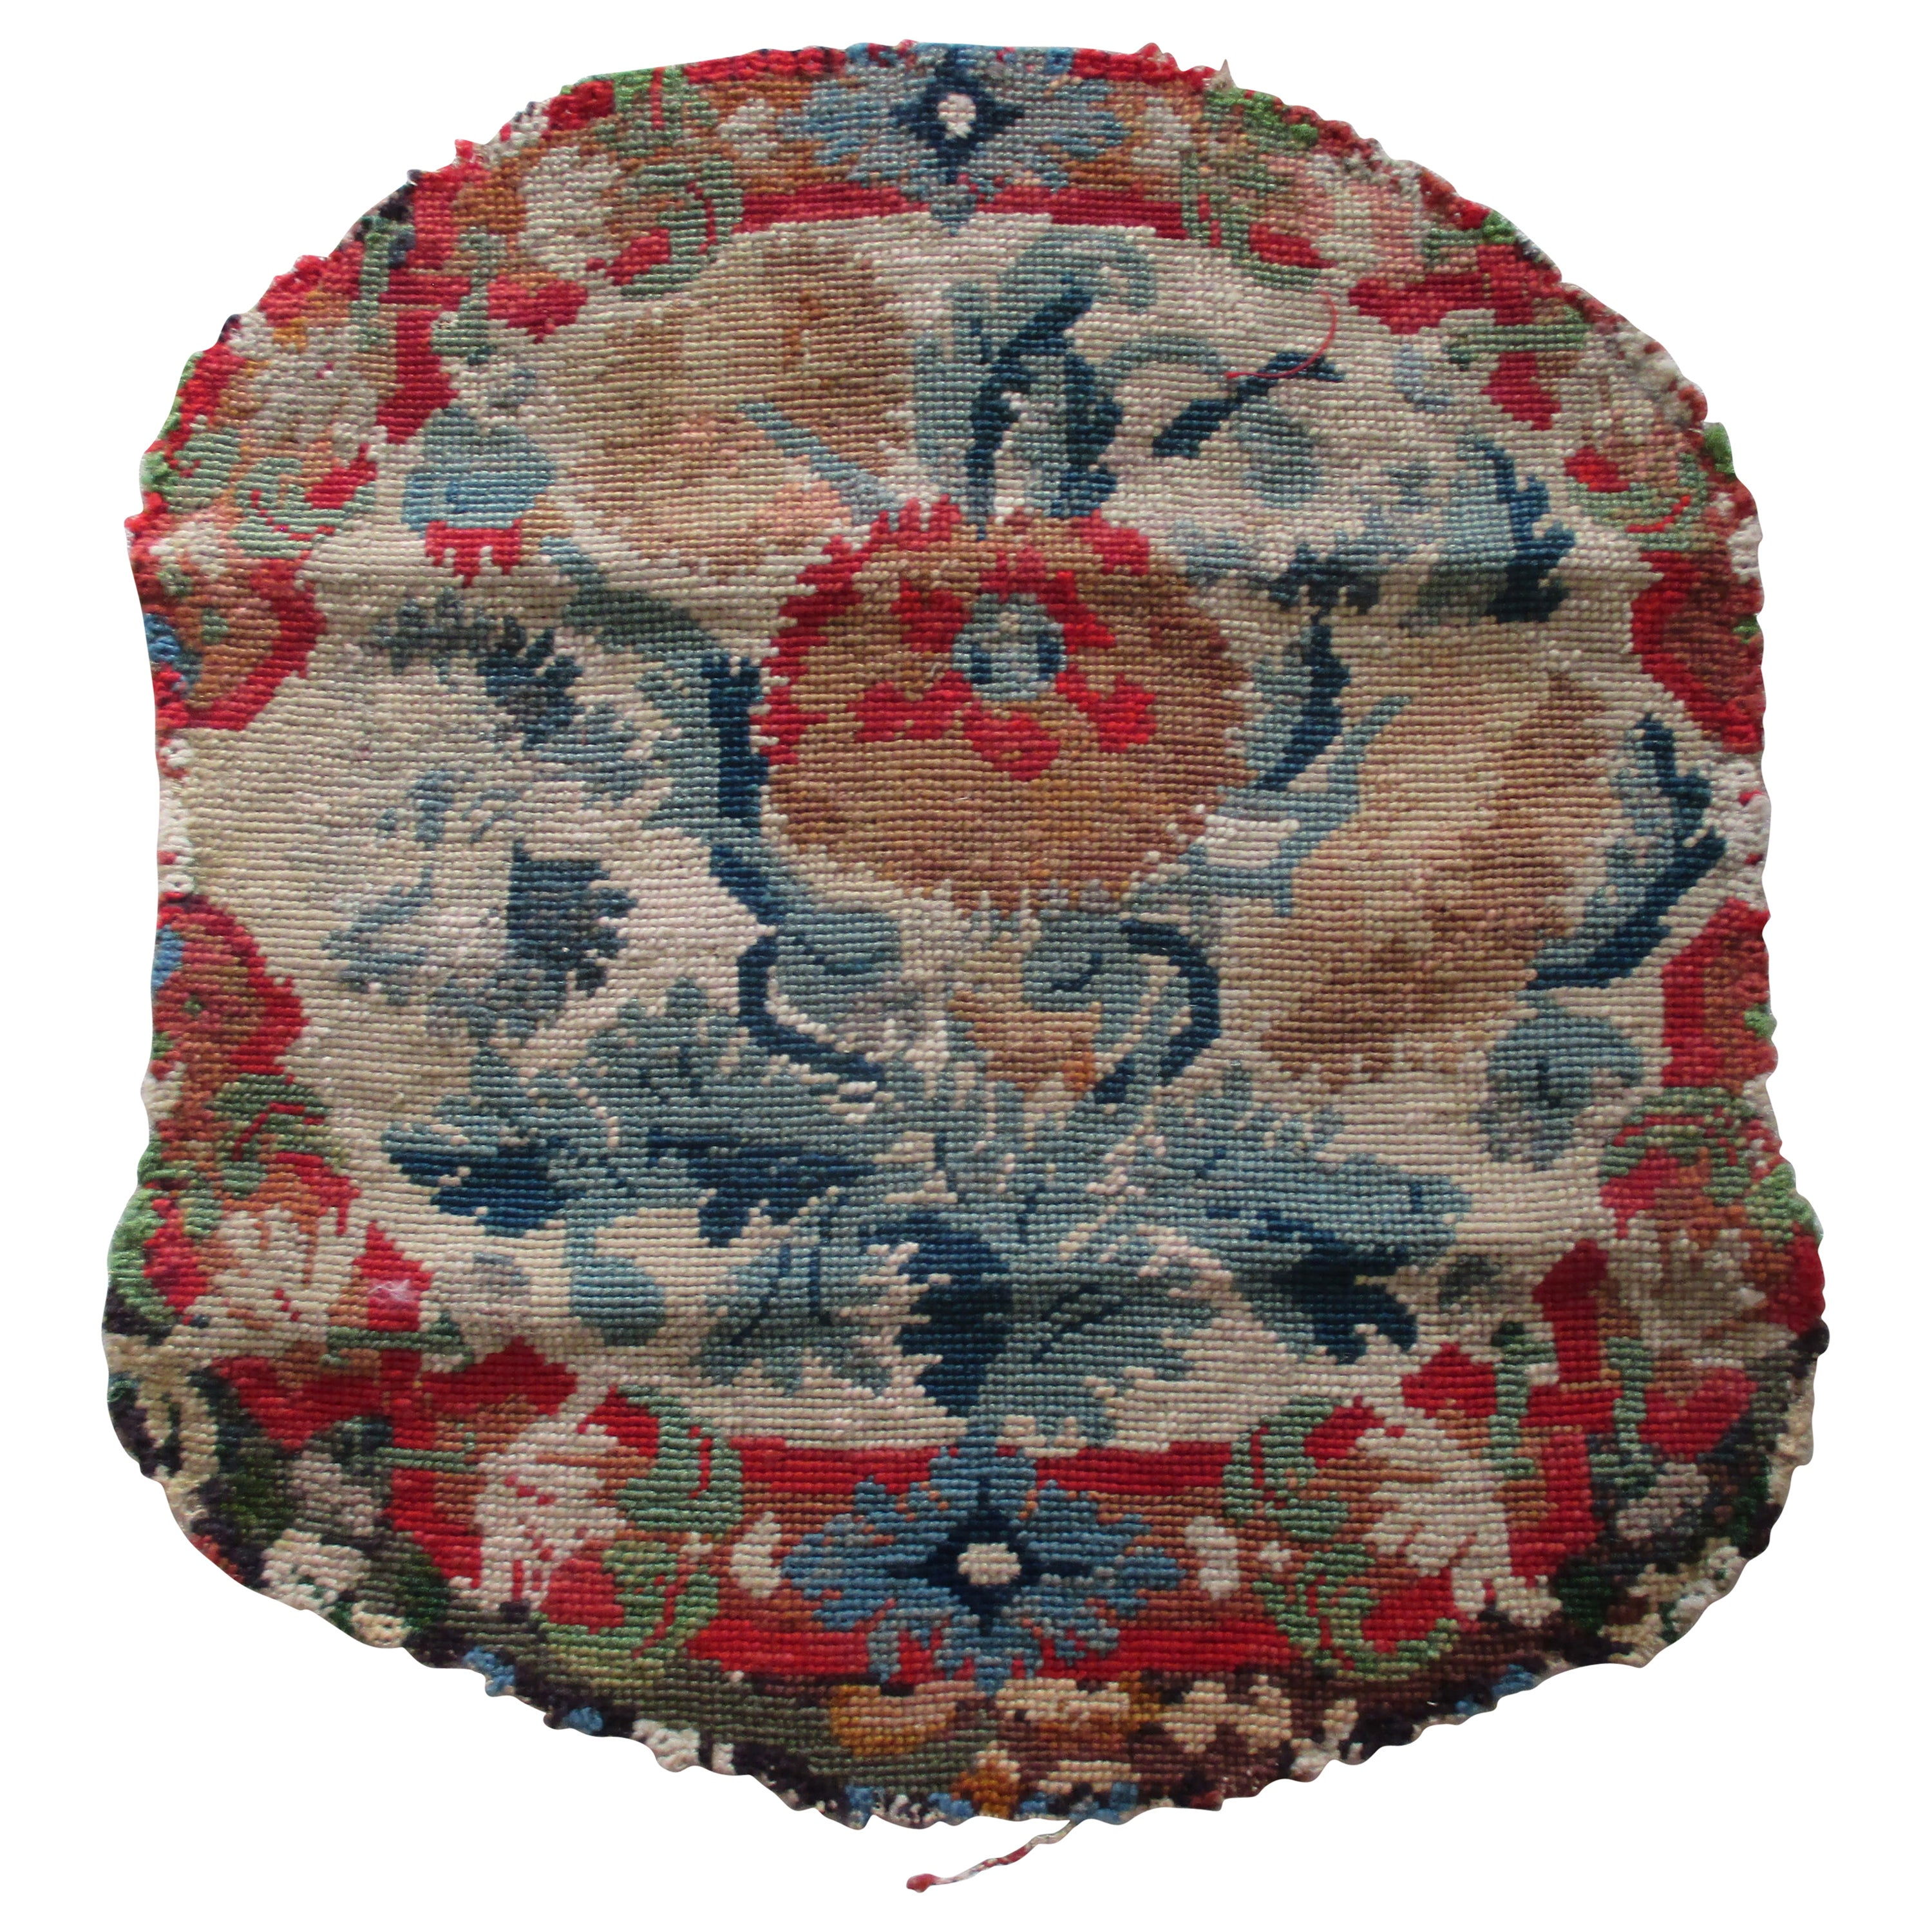 Antique Floral Needlepoint Seat Cover Tapestry Fragment